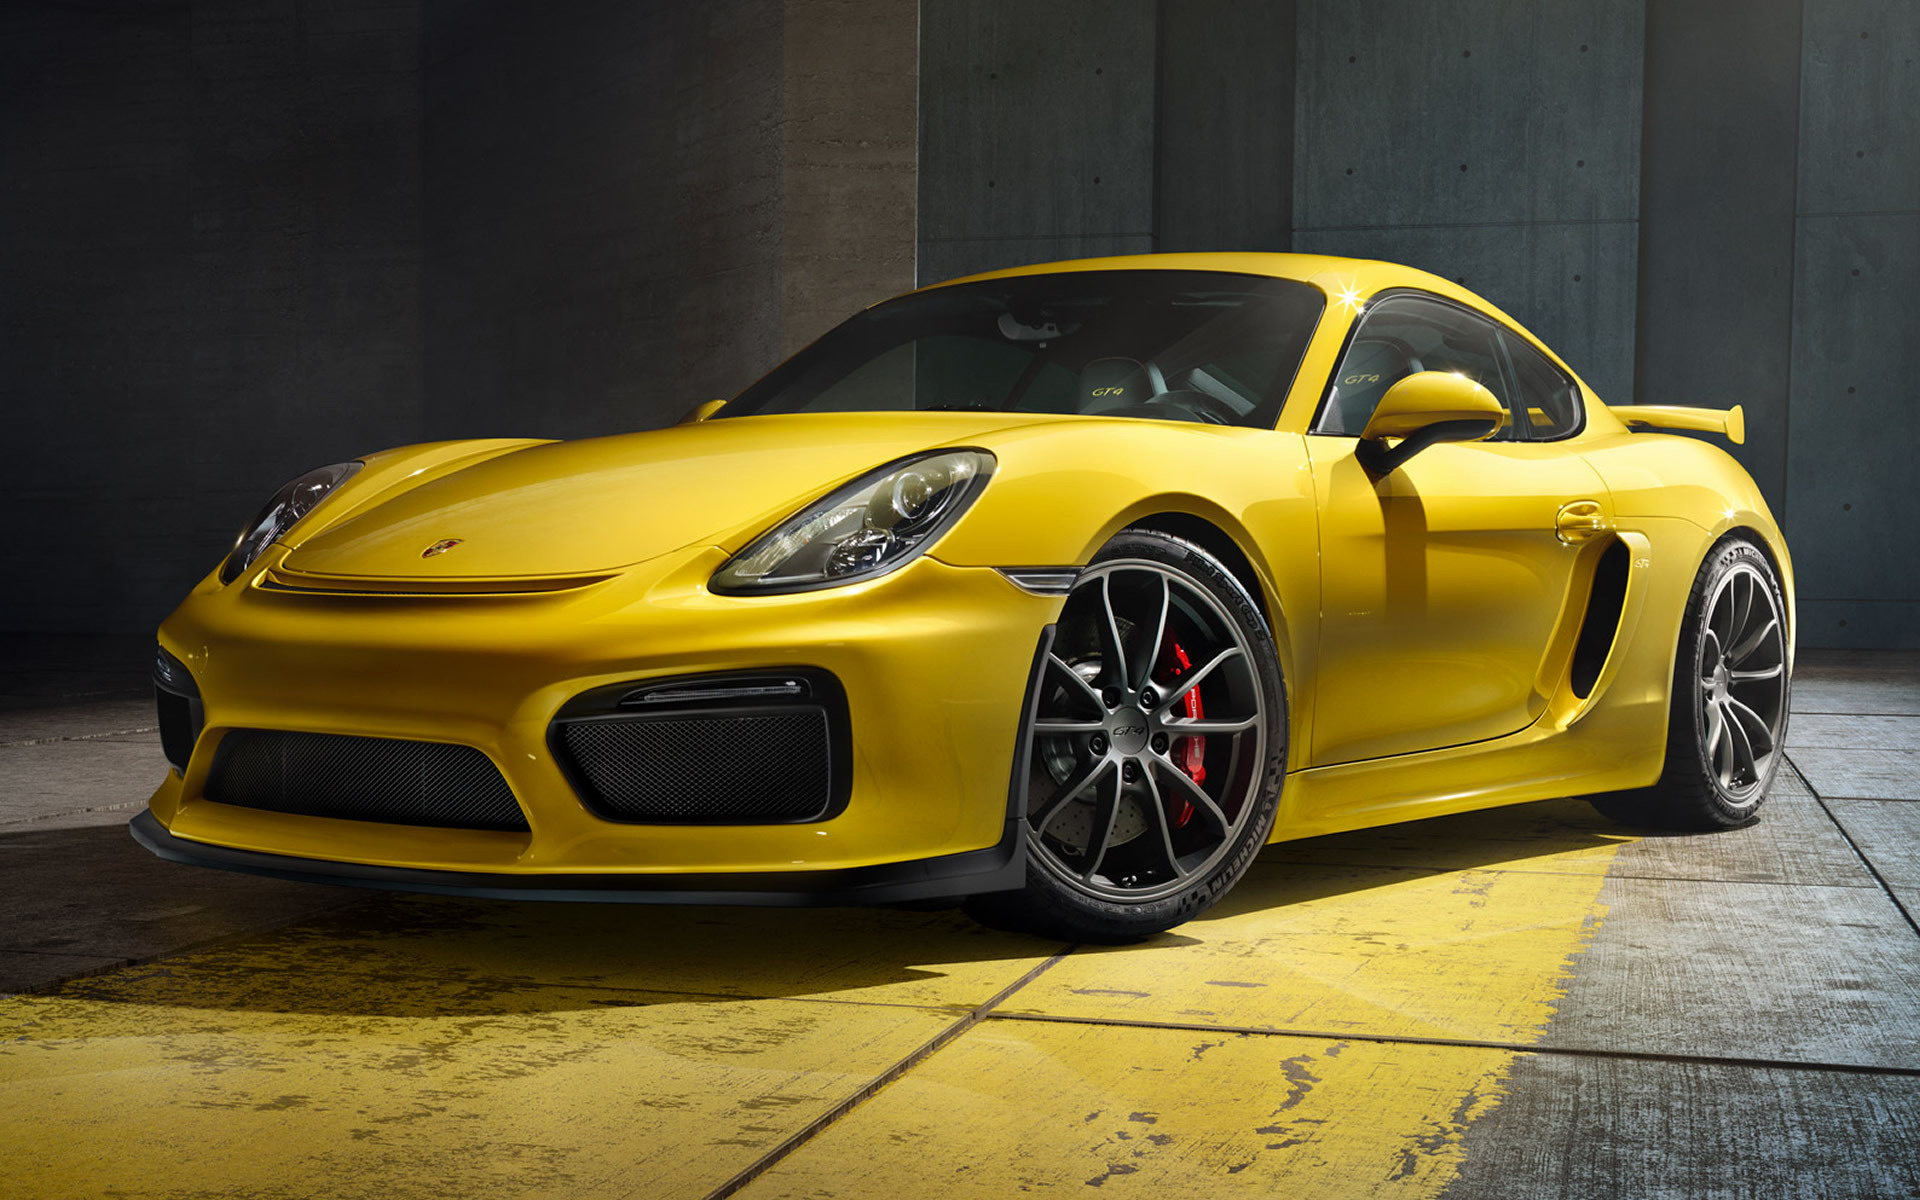 Cayman Gt4 Wall Paper: Porsche Cayman GT4 (2015) Wallpapers And HD Images